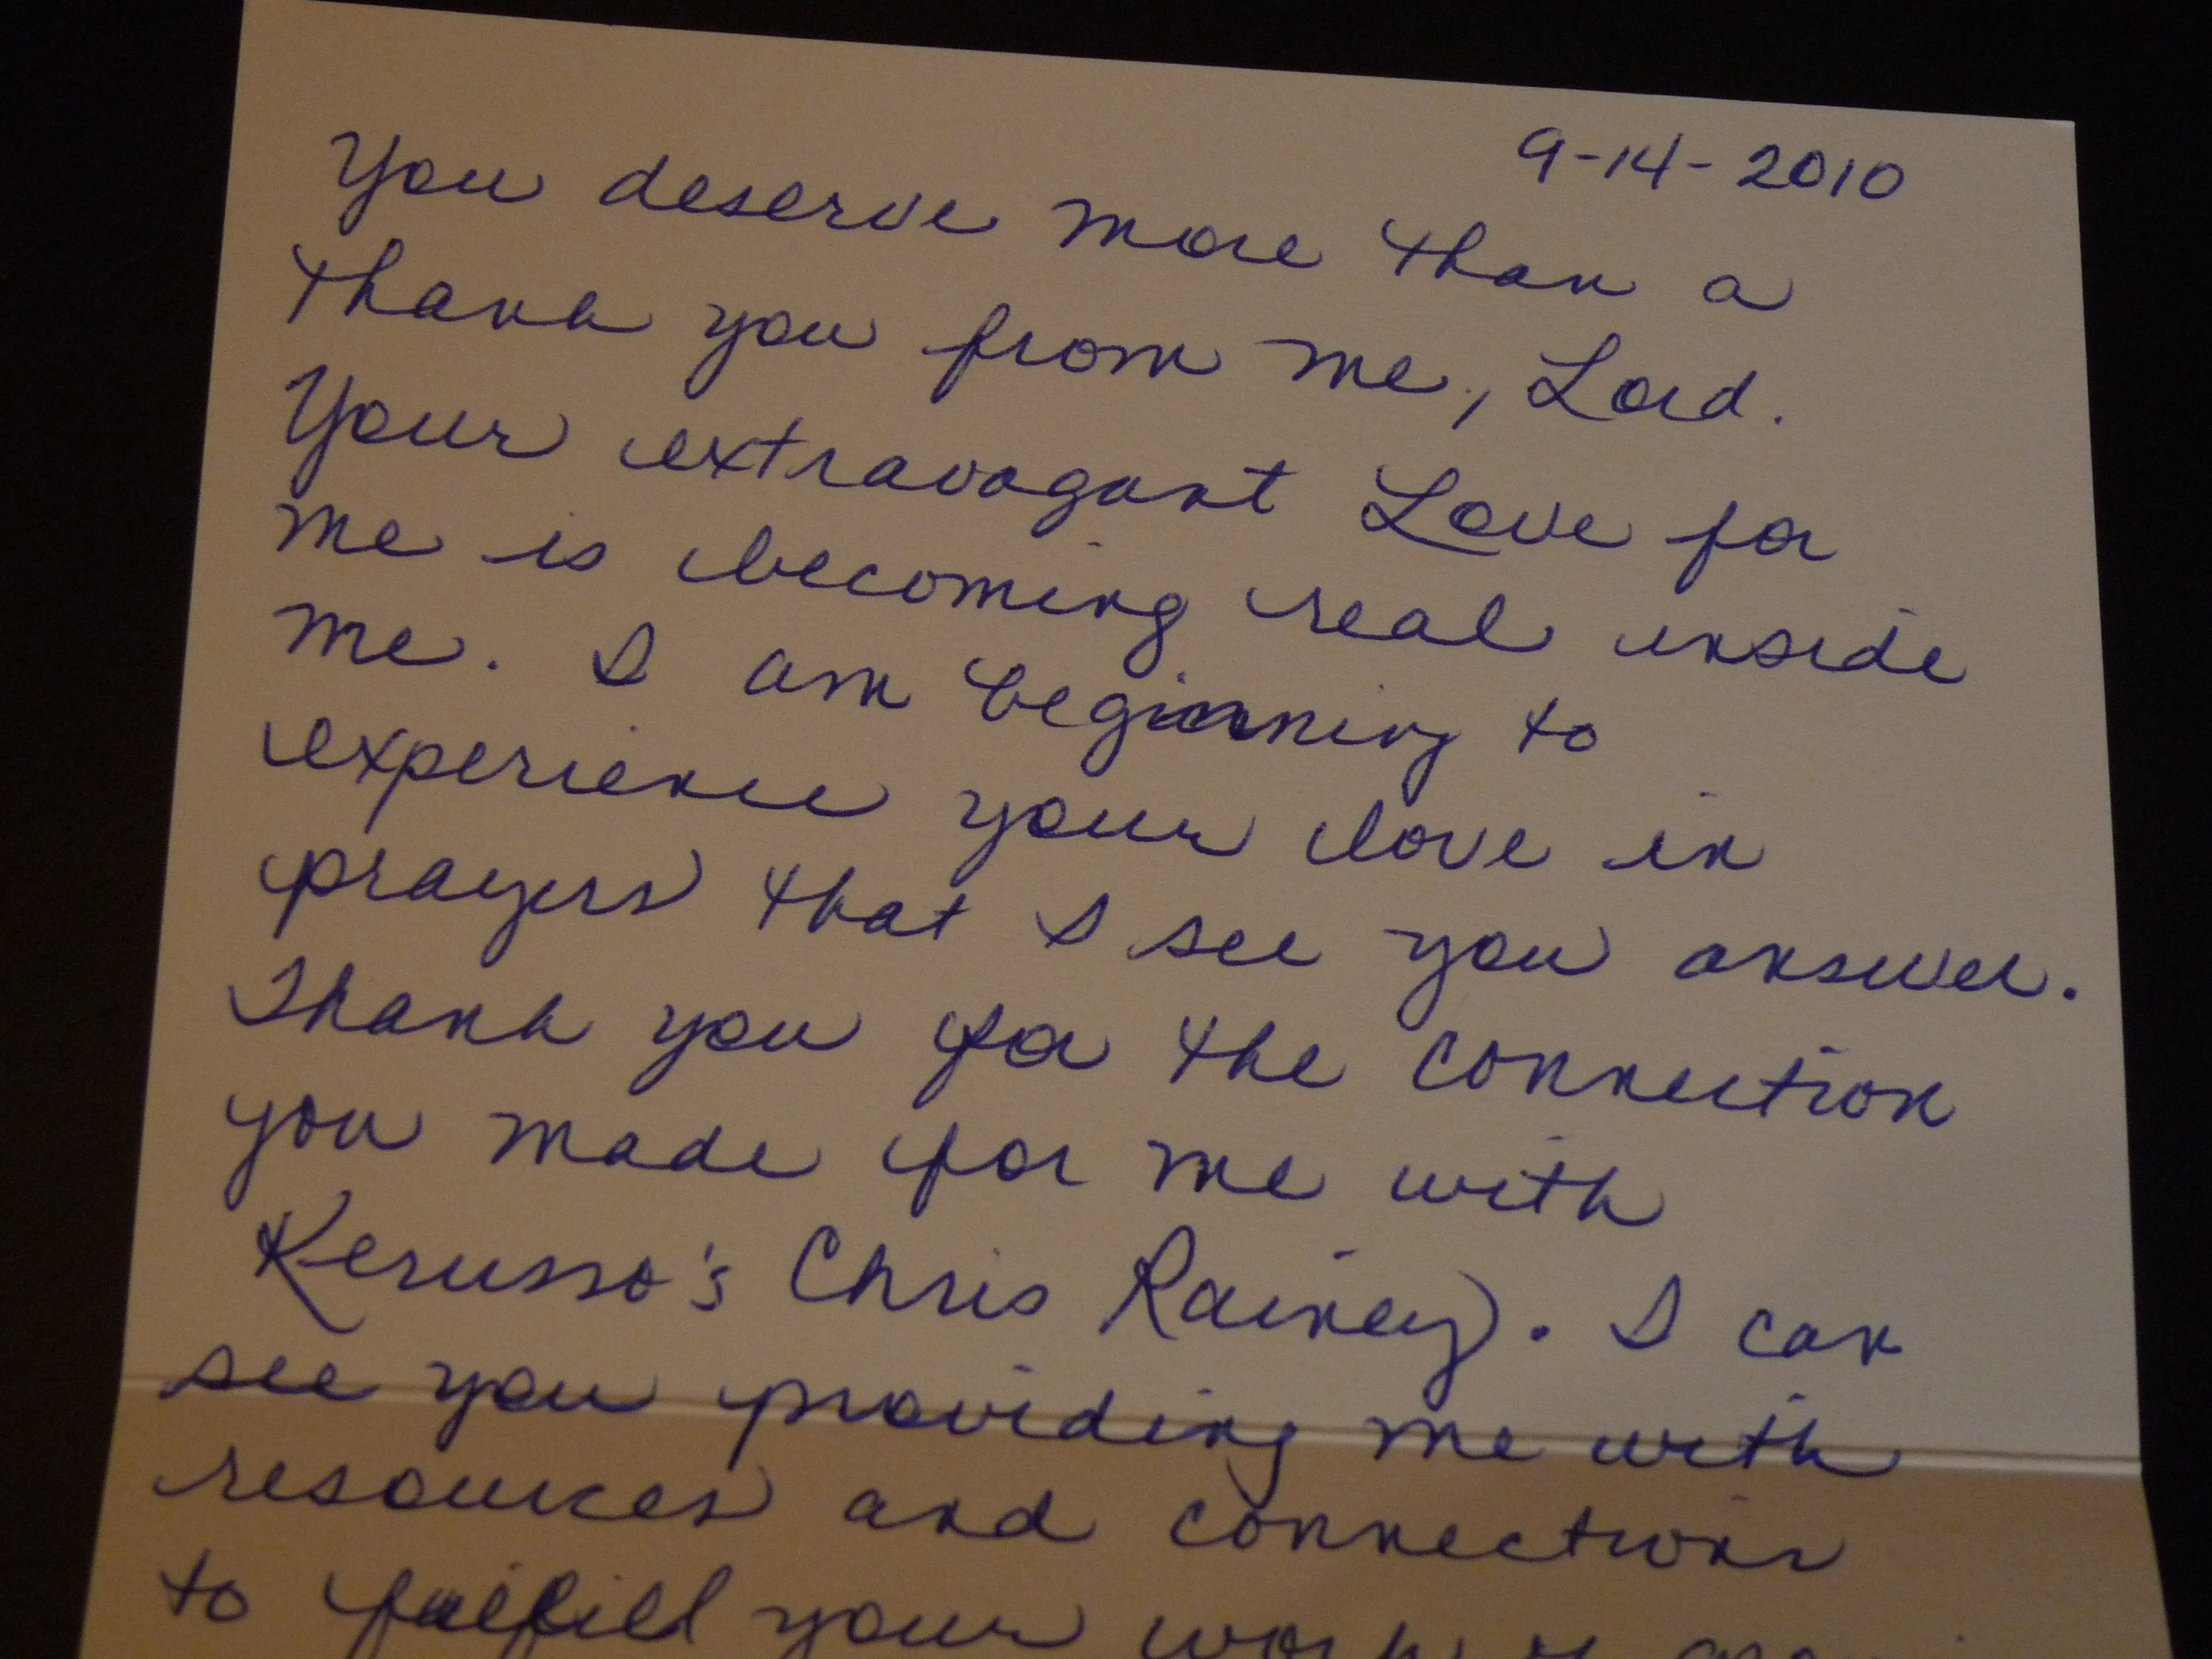 Thank You Note! Response To Extravagant Gifts